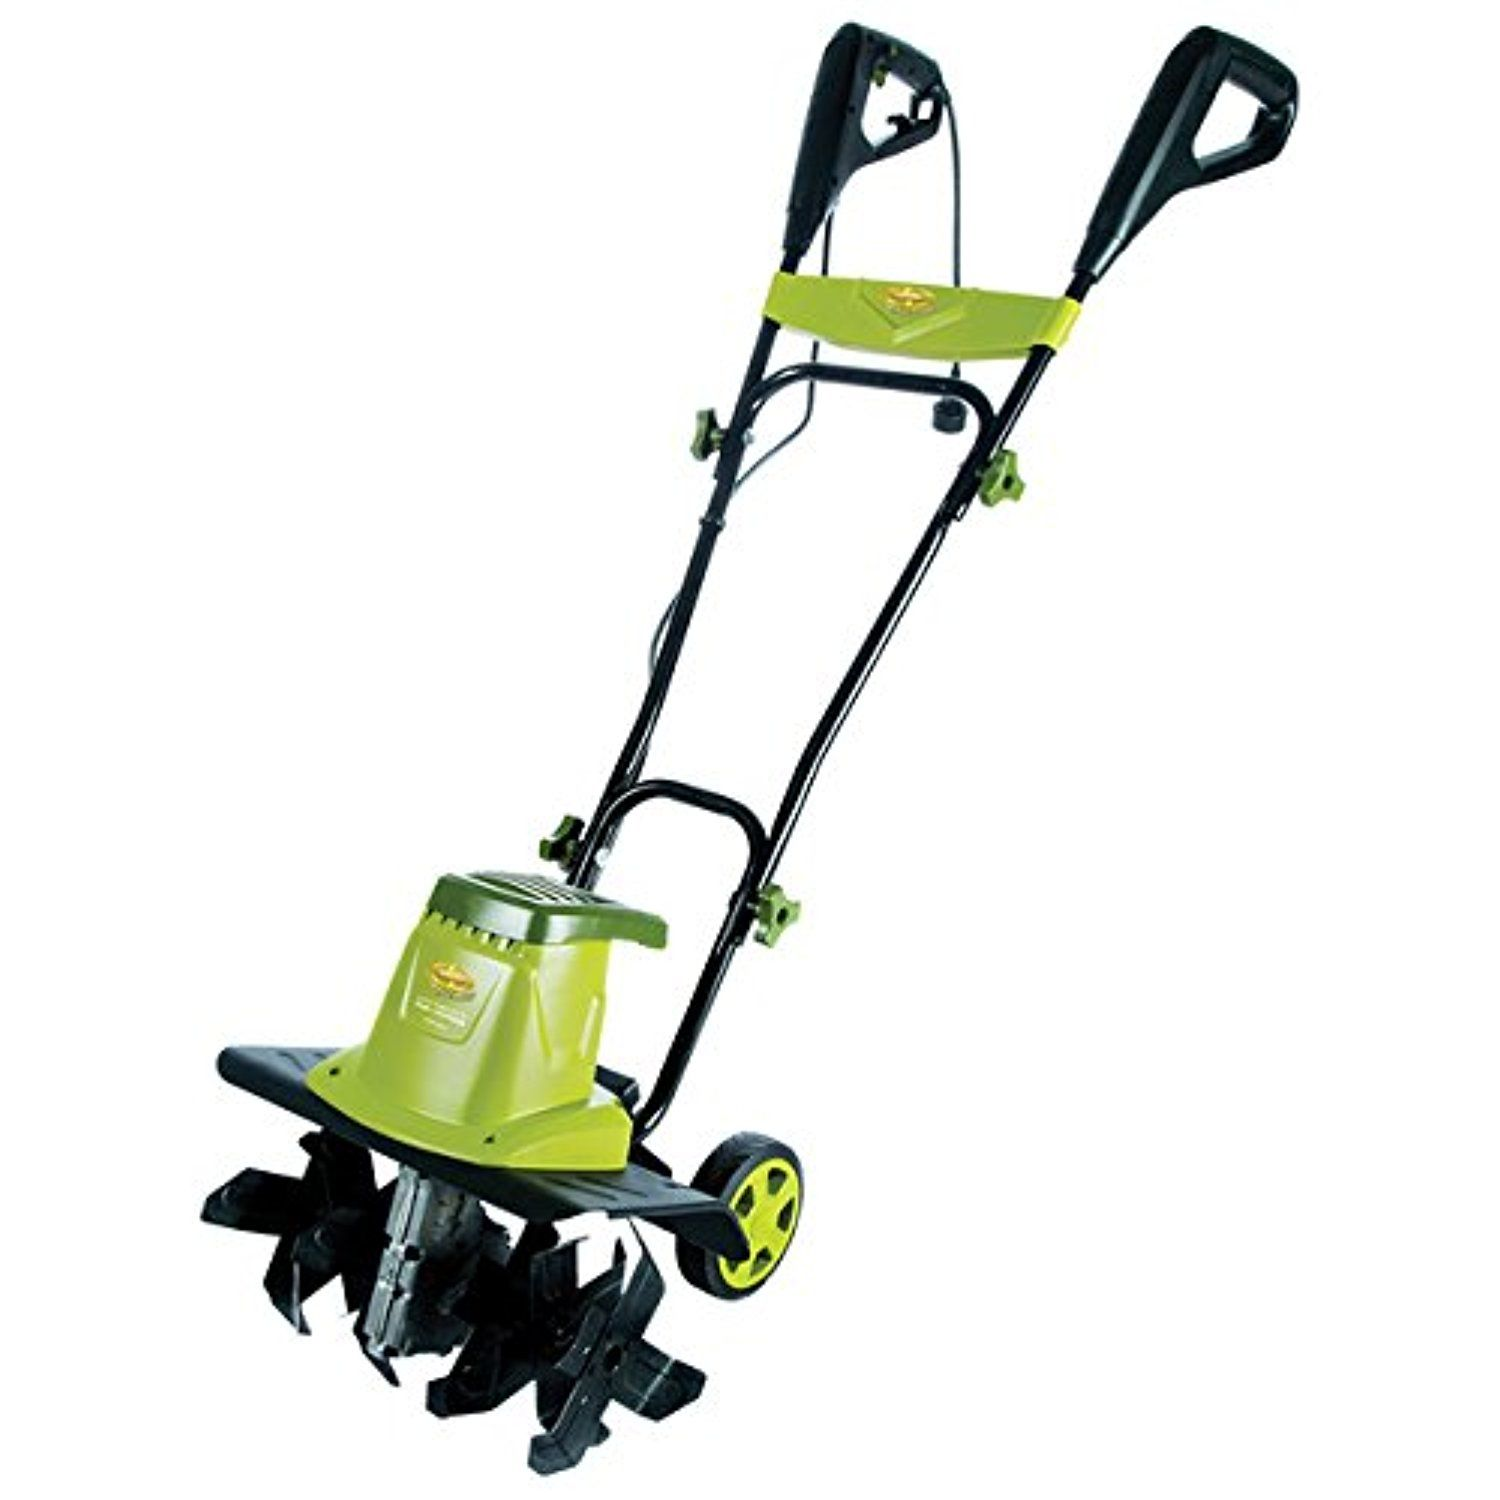 Enviromower cordless electric mower Quiet and clean and no smelly